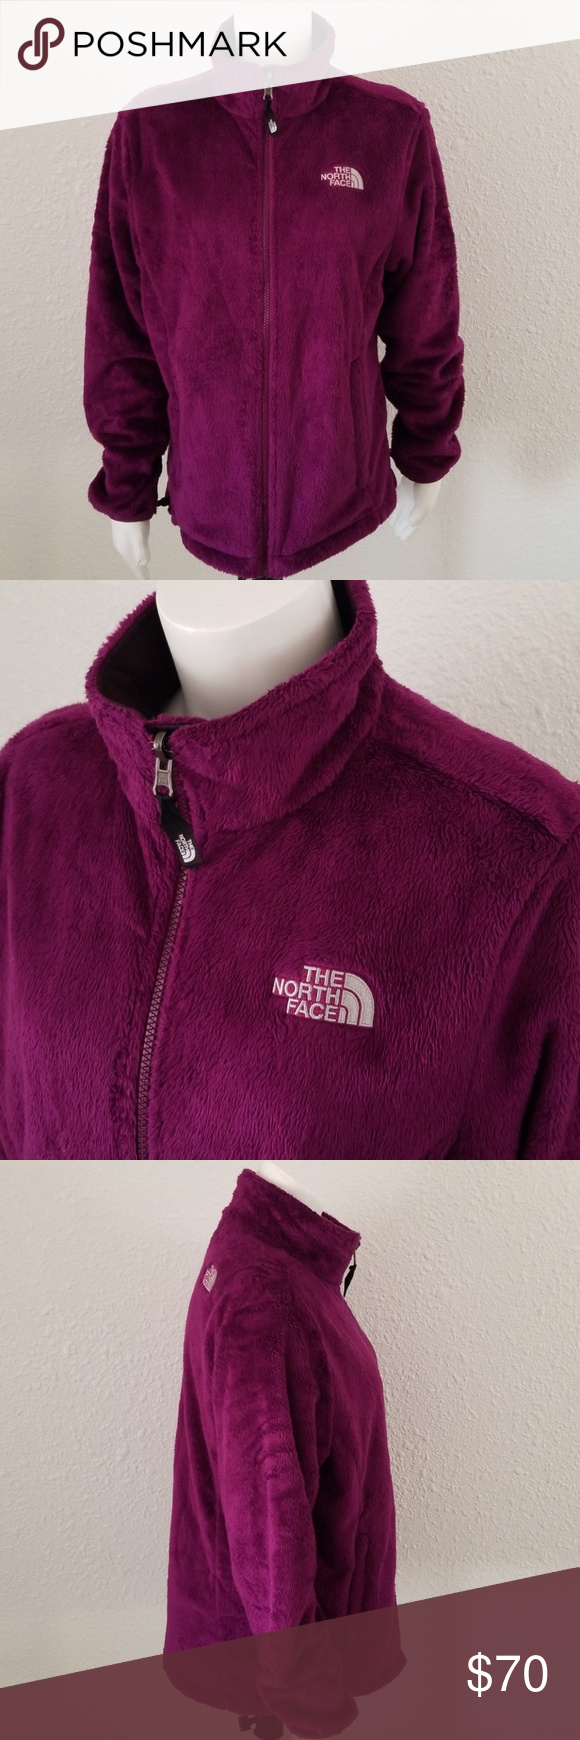 The North Face Osito 2 Ret Parlor Purple Jacket L Purple Jacket Warm Fleece Jacket North Face Osito [ 1740 x 580 Pixel ]